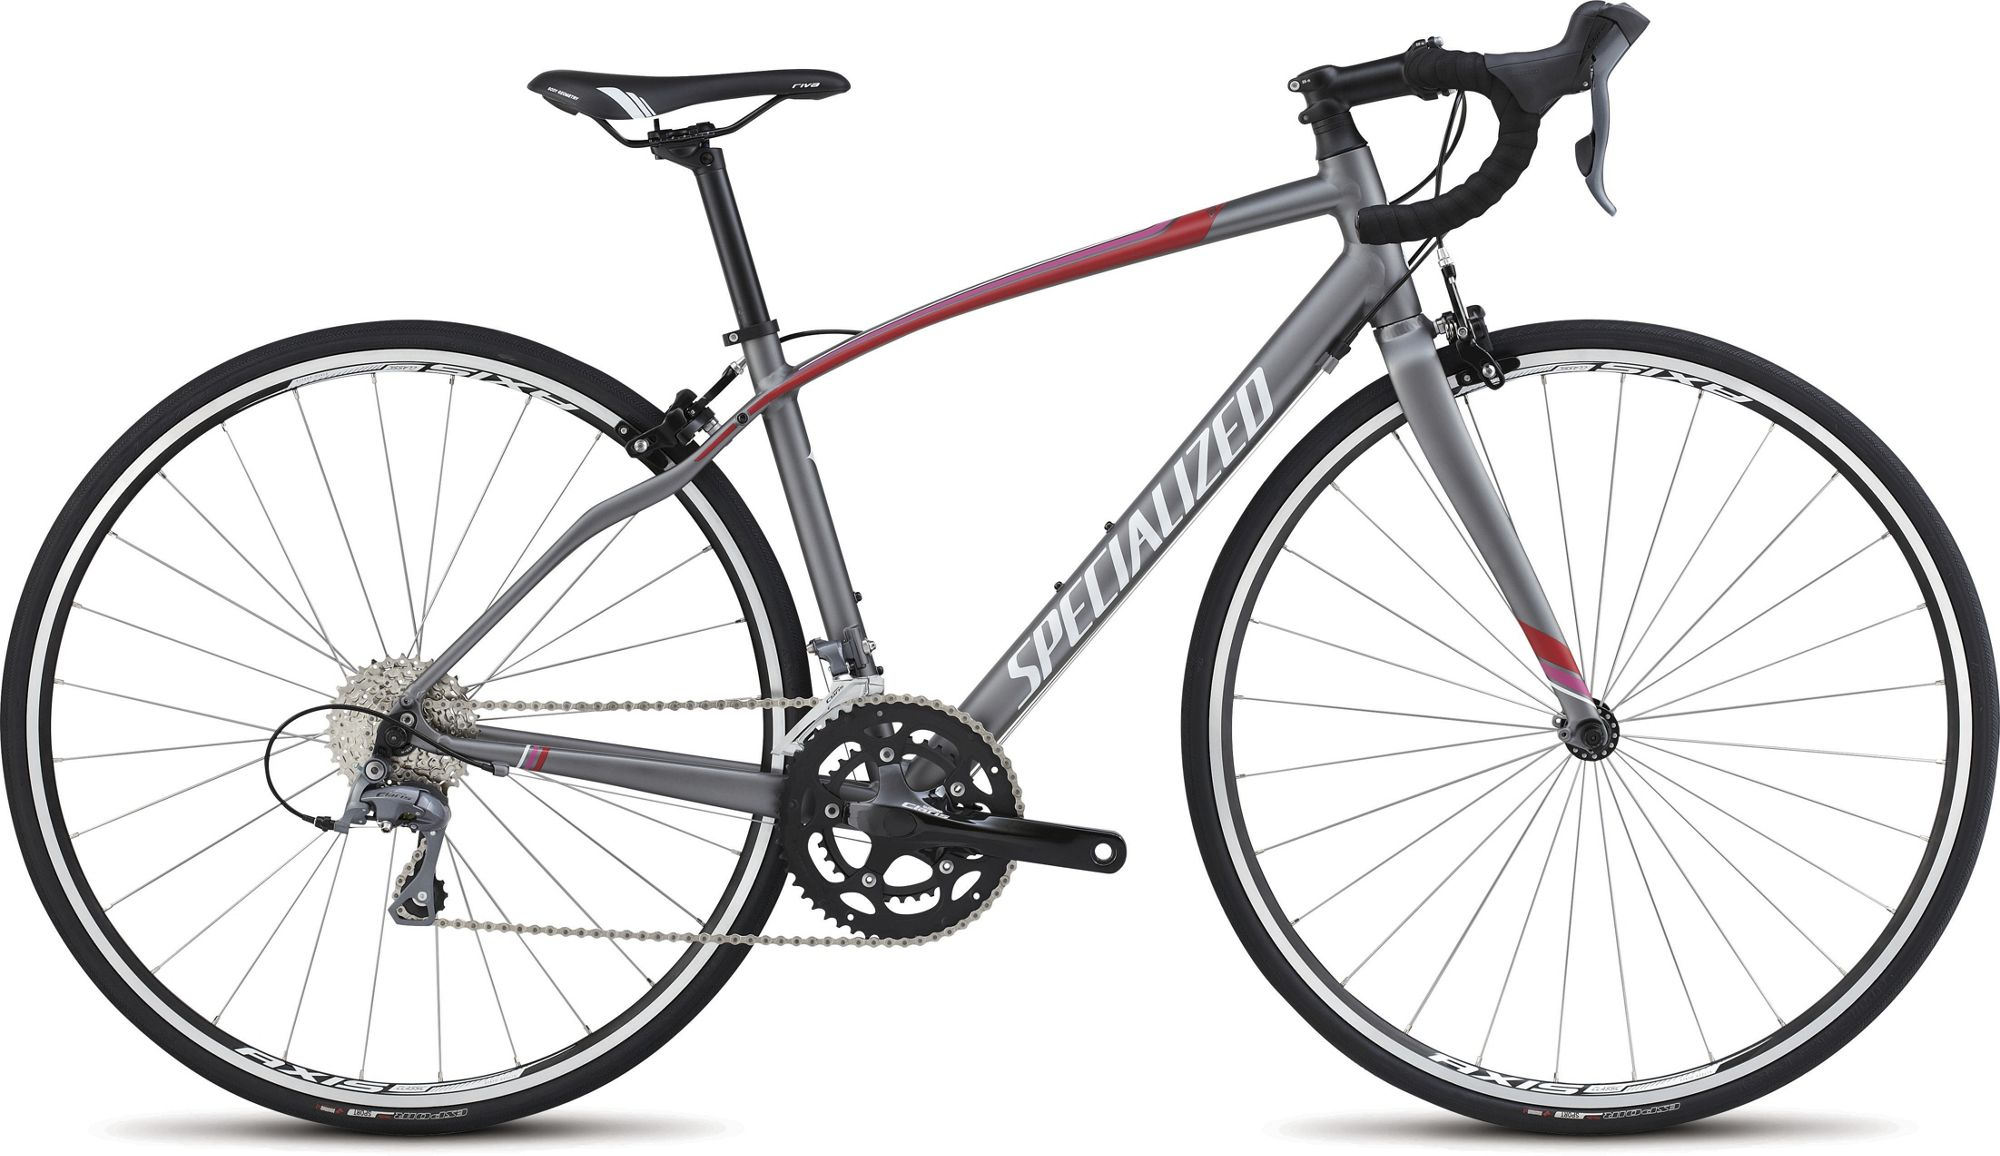 Specialized Dolce 2015 review - The Bike List